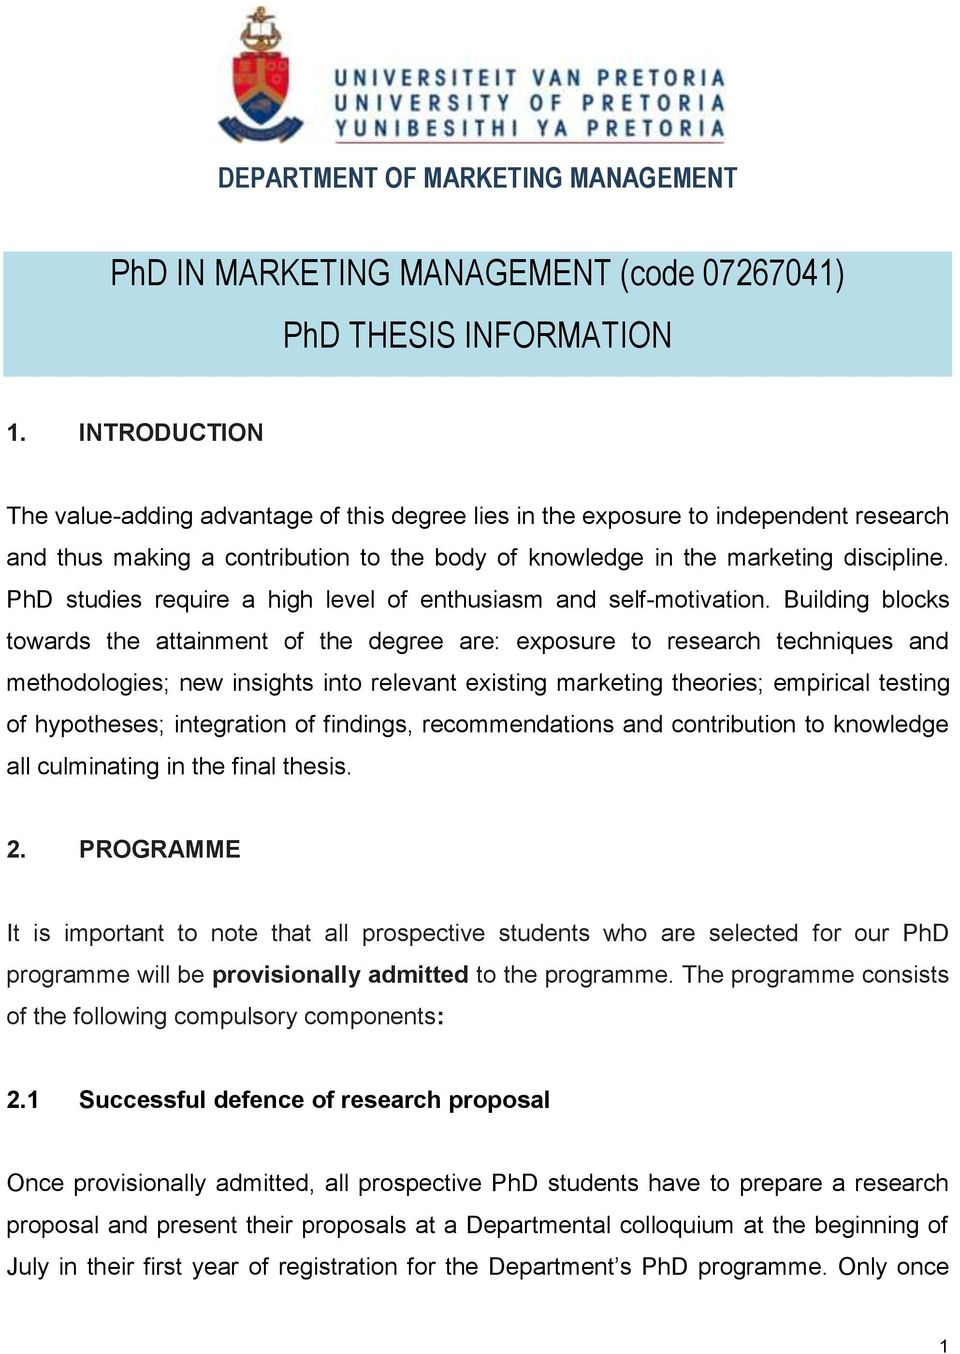 Free download phd thesis in marketing management how do you write a format